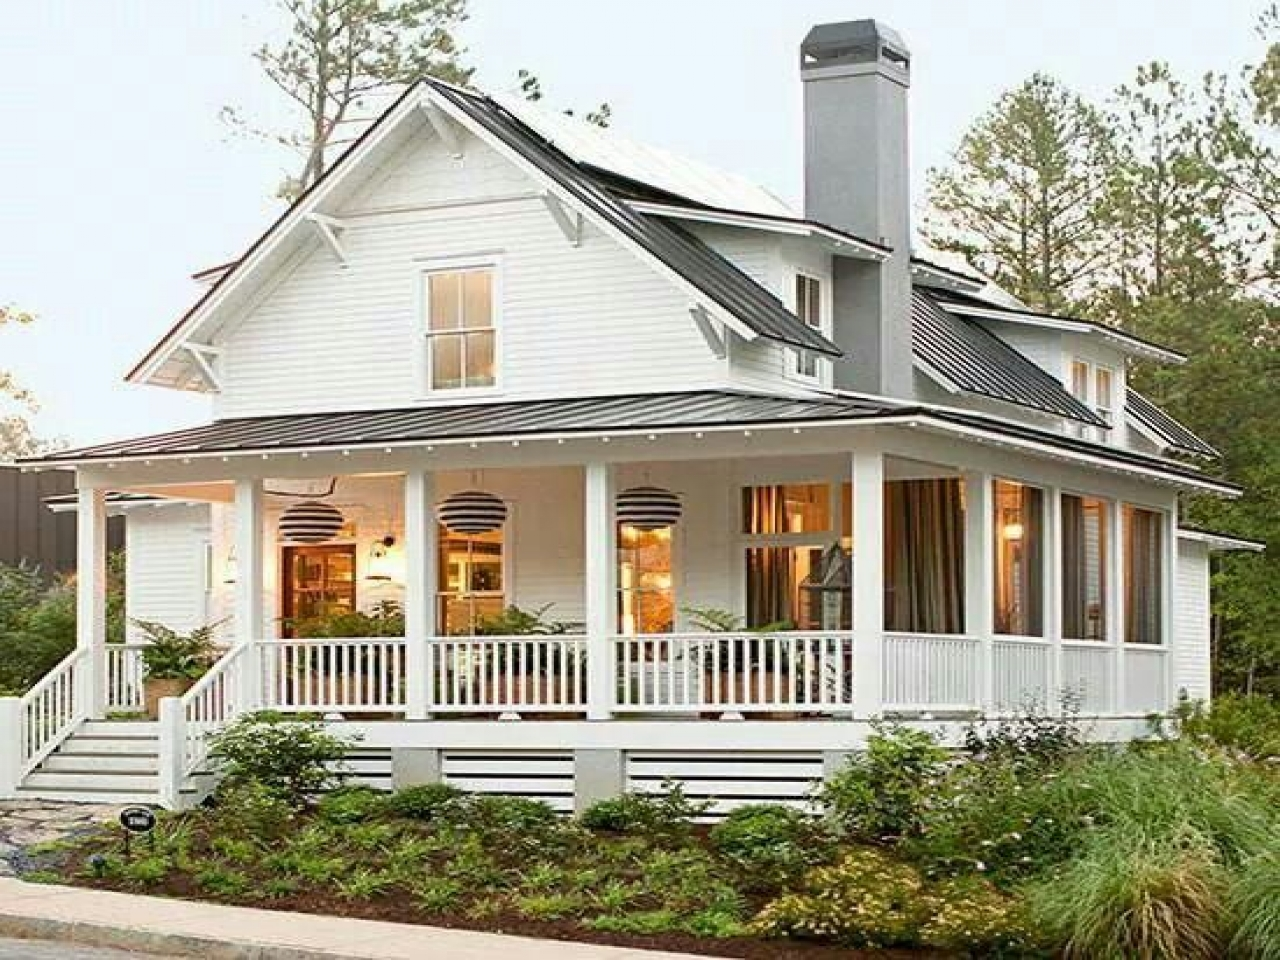 Cape cod house cottage house with wrap around porch tiny for Cape cod cottage style house plans